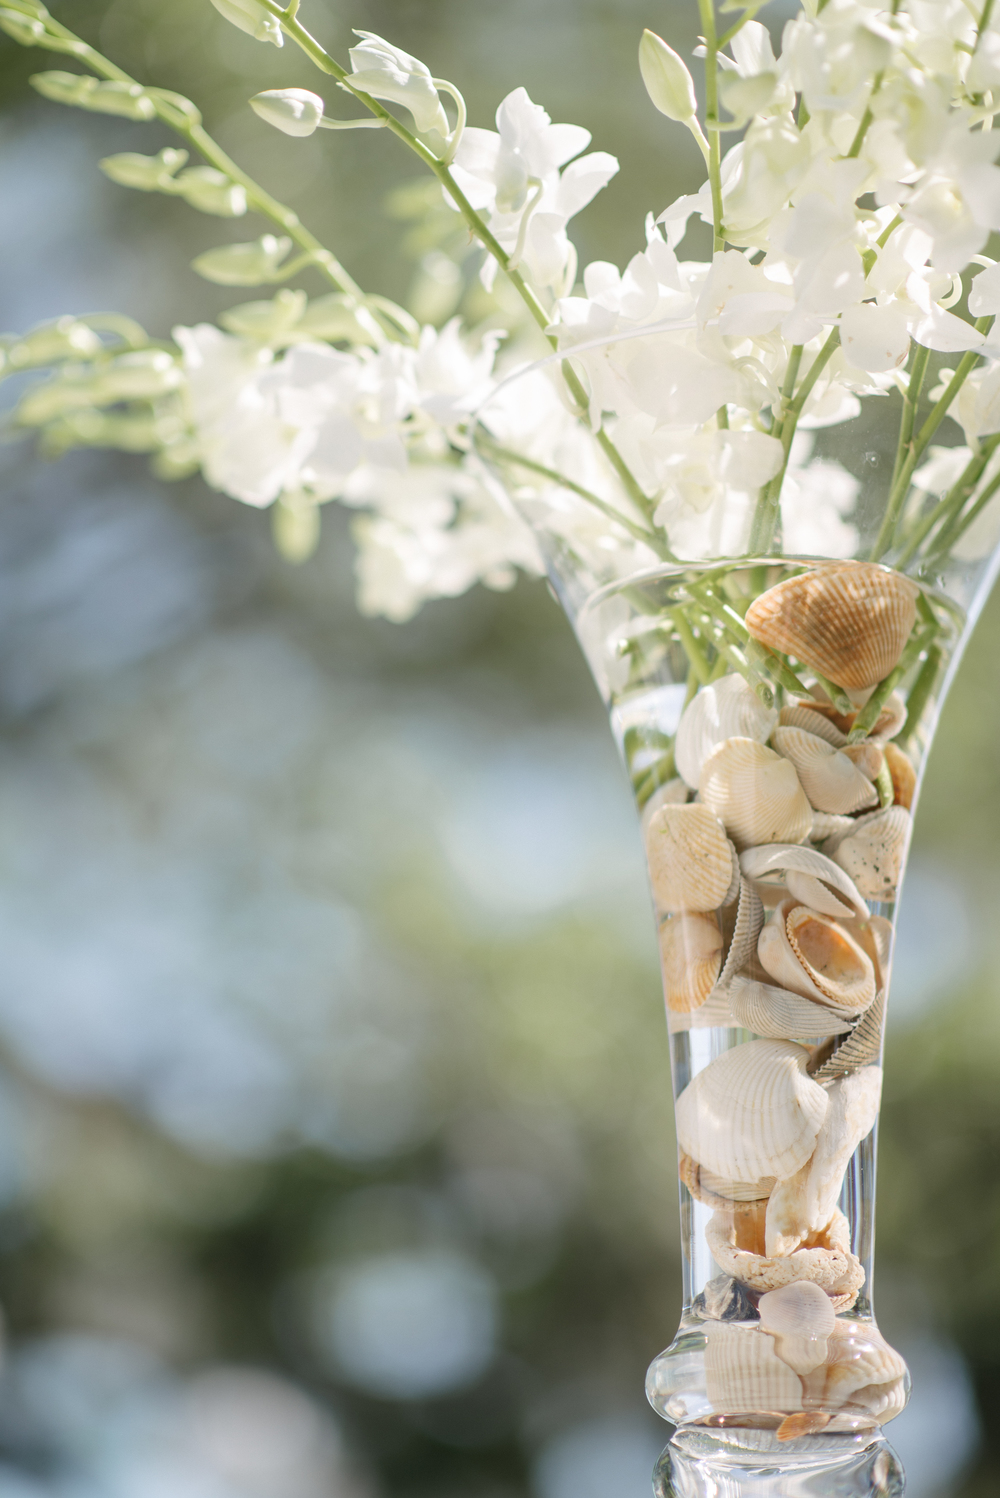 I collected the shells off the beach for the tall arrangements. I used tons of white dendrobium orchids at the Rehearsal Dinner, then added tons more for the reception.